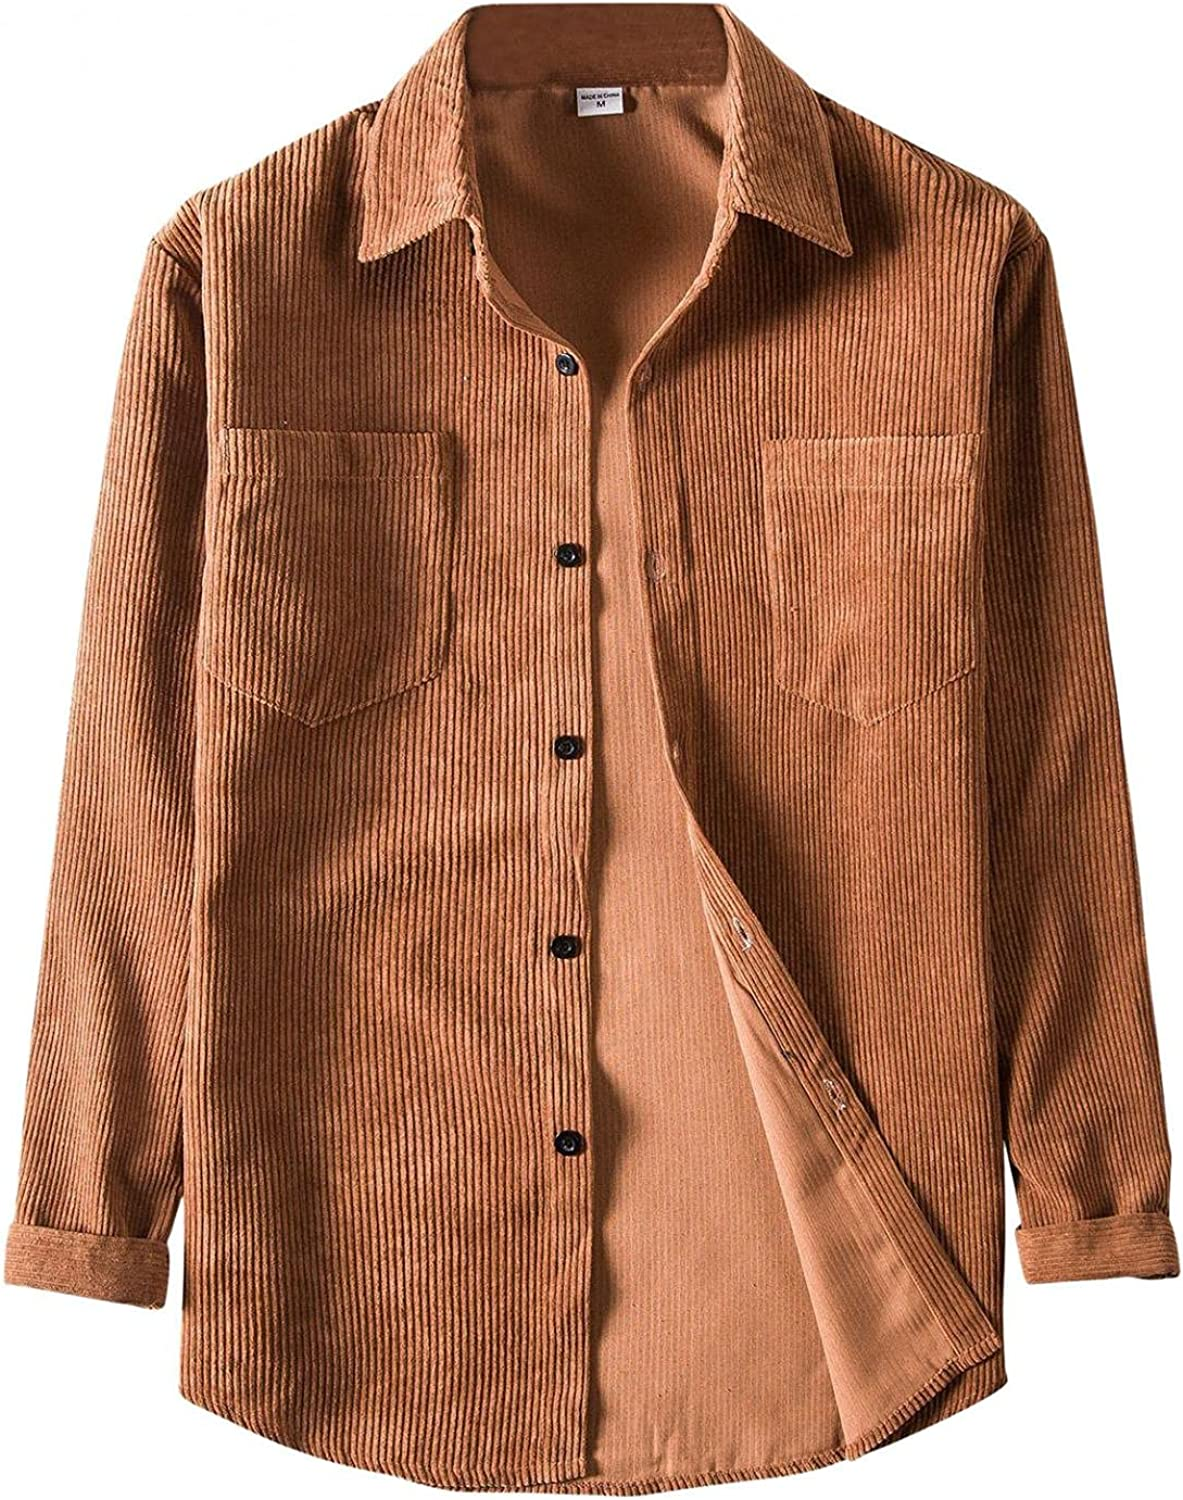 Men's Vintage Corduroy Long Sleeve Shirt Button Down Casual Fashion Blouse Solid Color Tops with Pocket